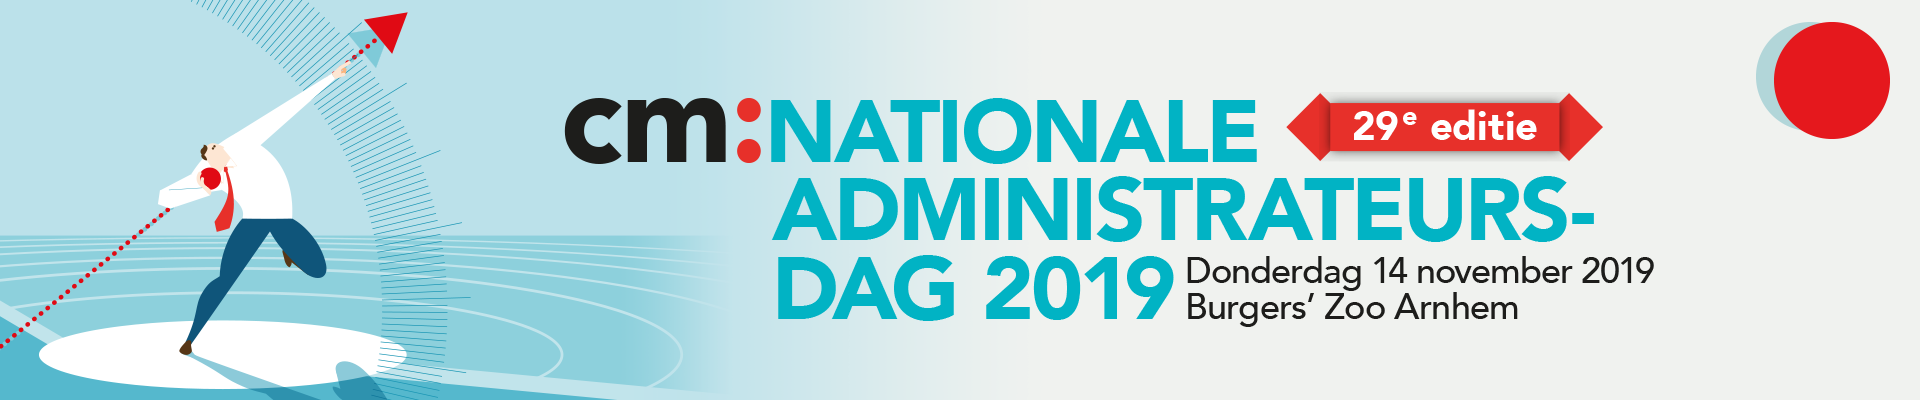 Nationale Administrateursdag 2019